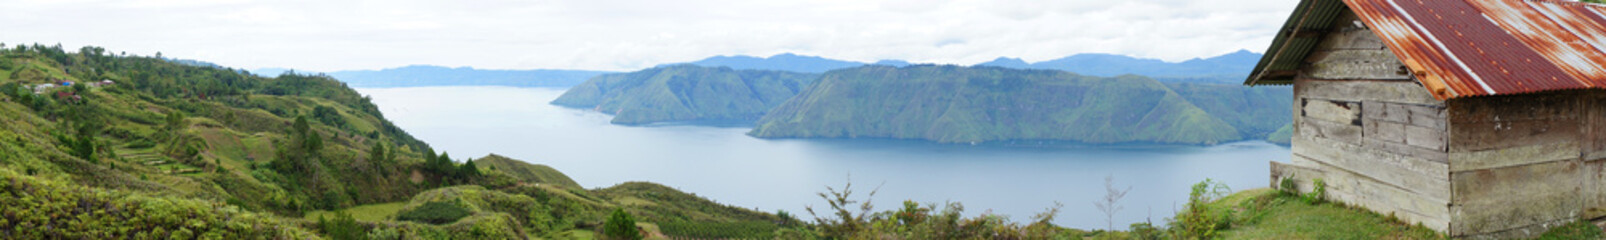 Panorama of house near the Lake toba